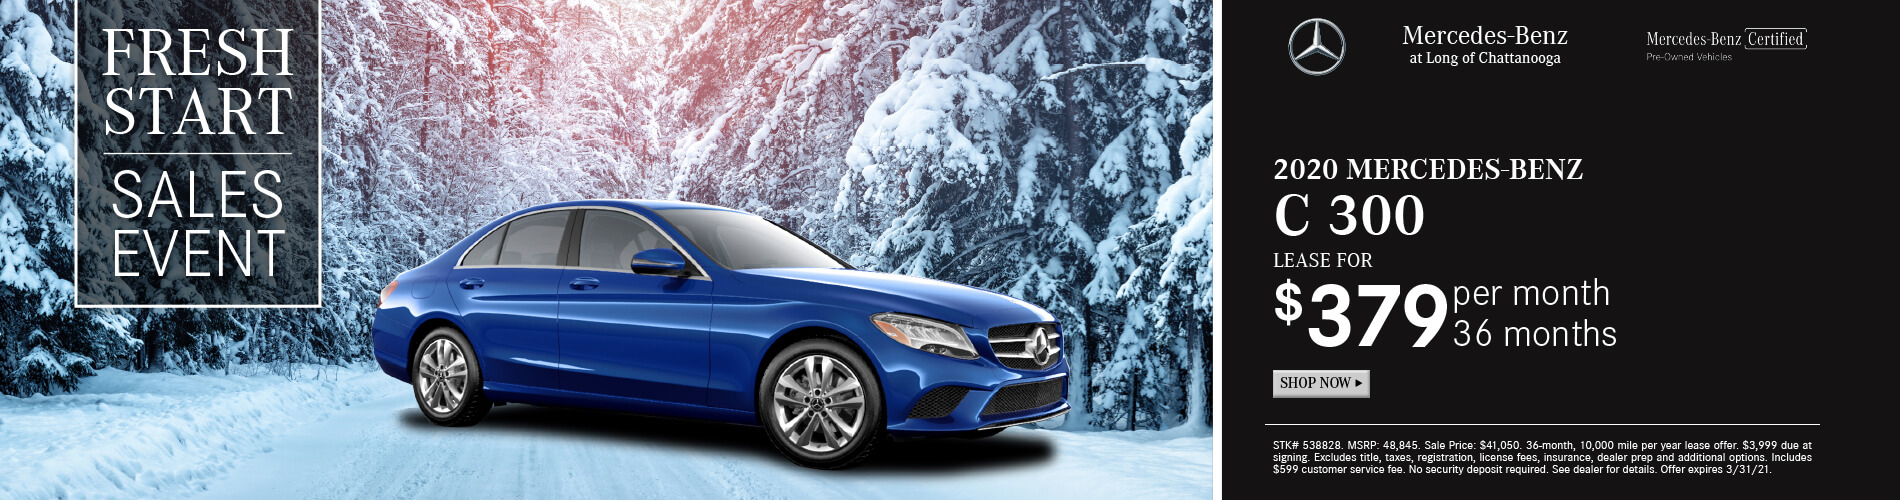 Mercedes-Benz Fresh Start Sales Event in Chattanooga